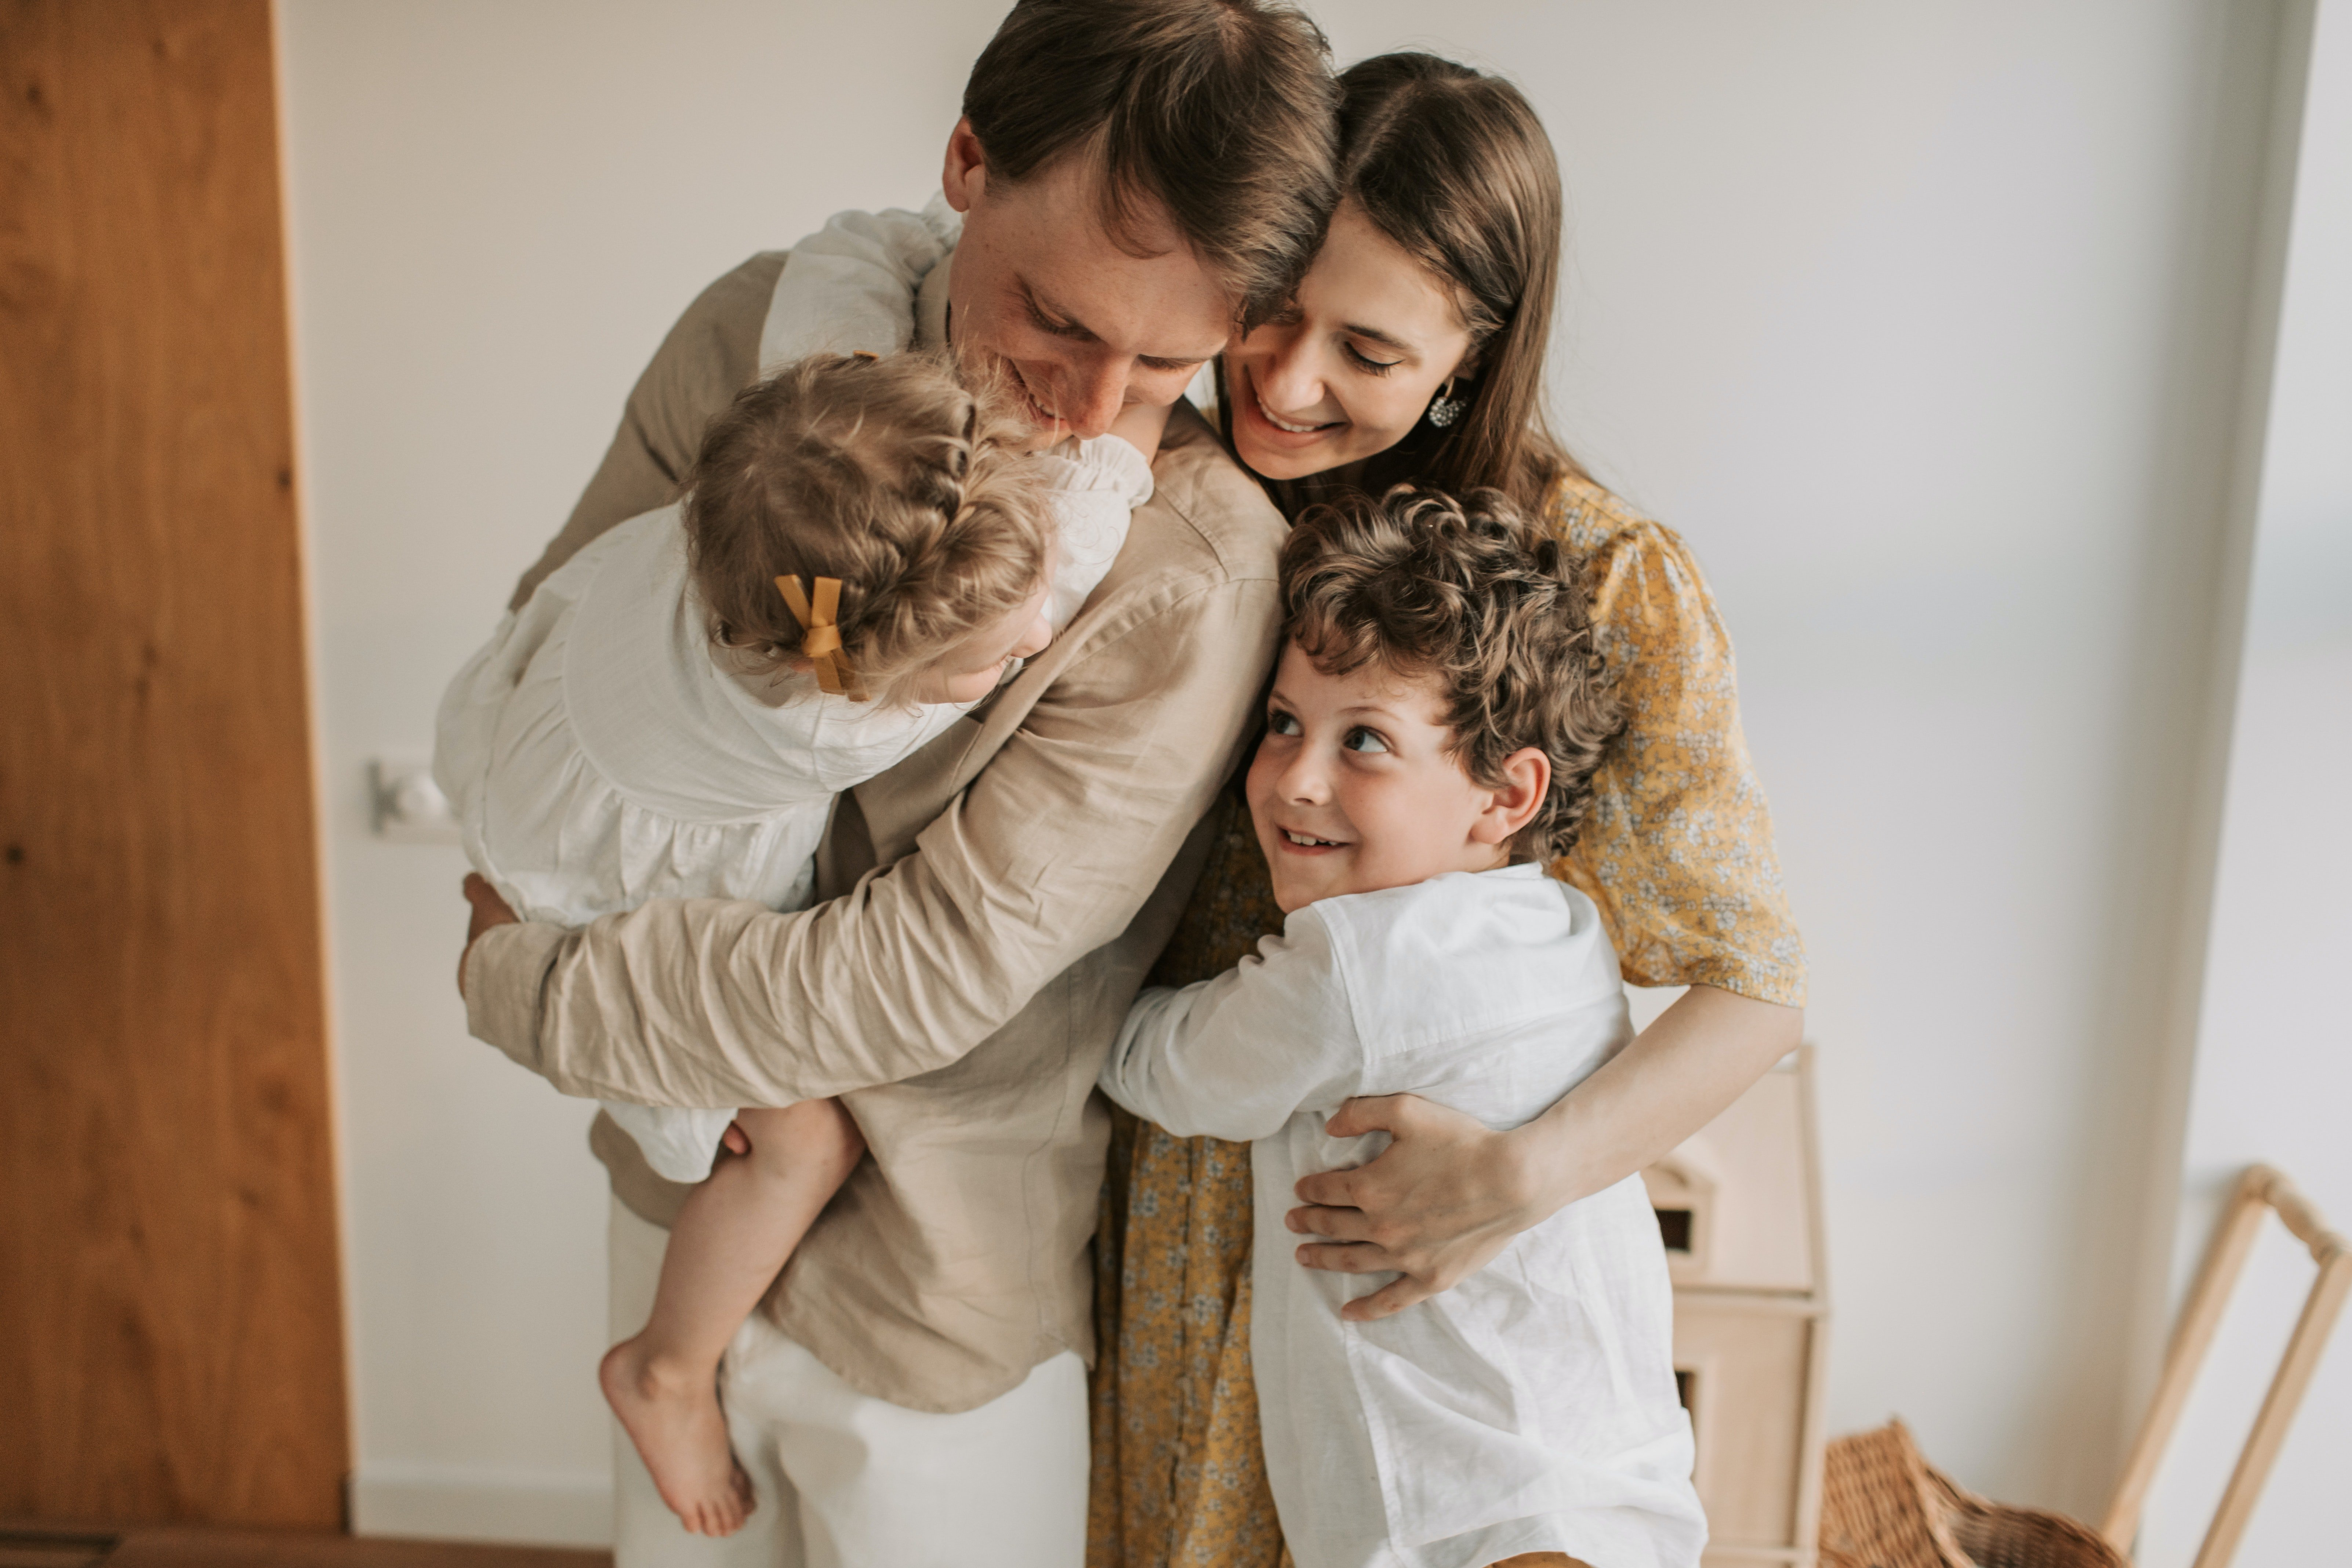 Nancy and Mr. Wilson got married and started a family   Photo: Pexels